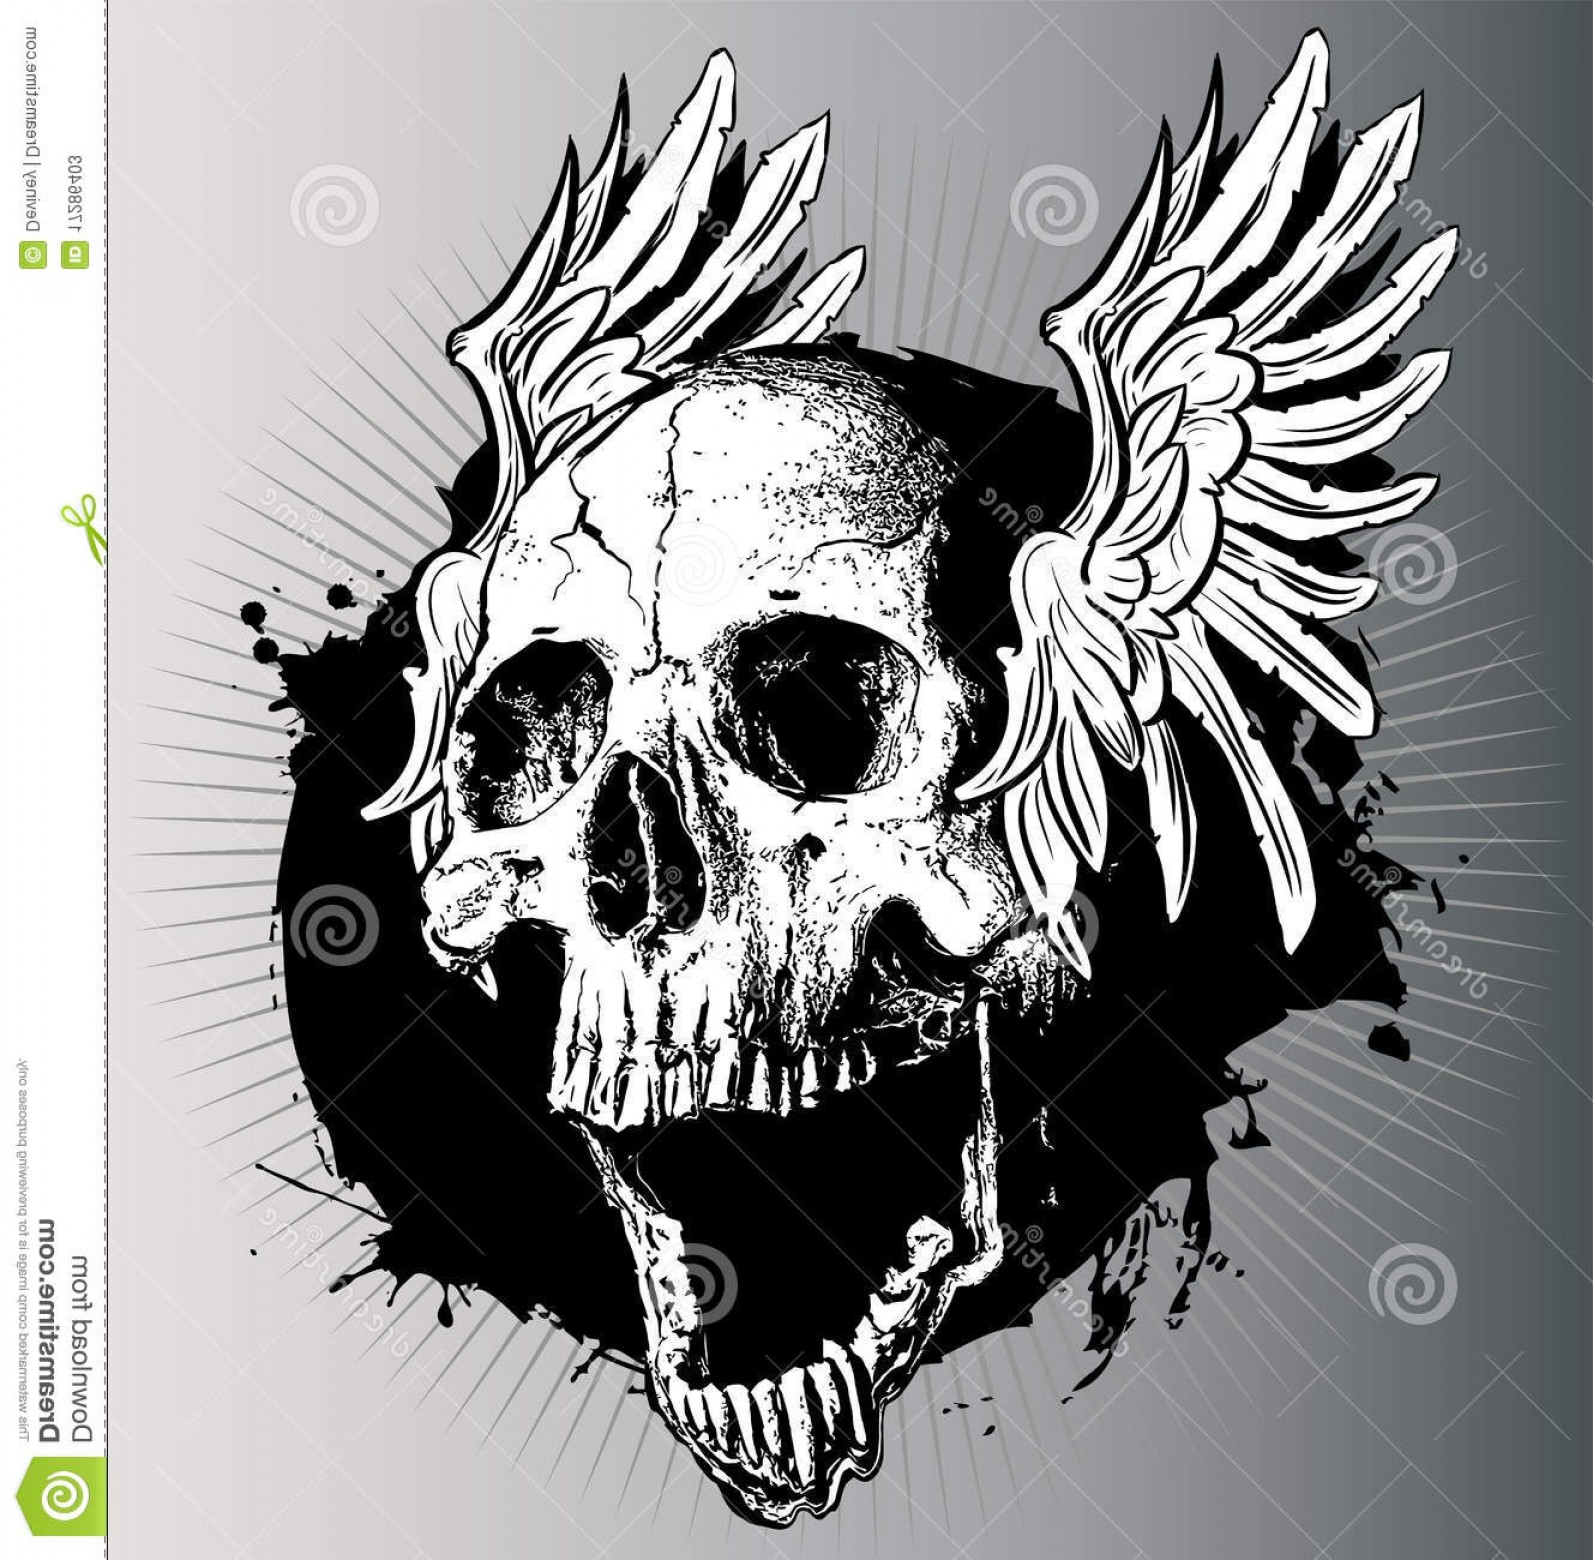 Flying Skull Vector: Stock Photos Vector Skull Wings Image